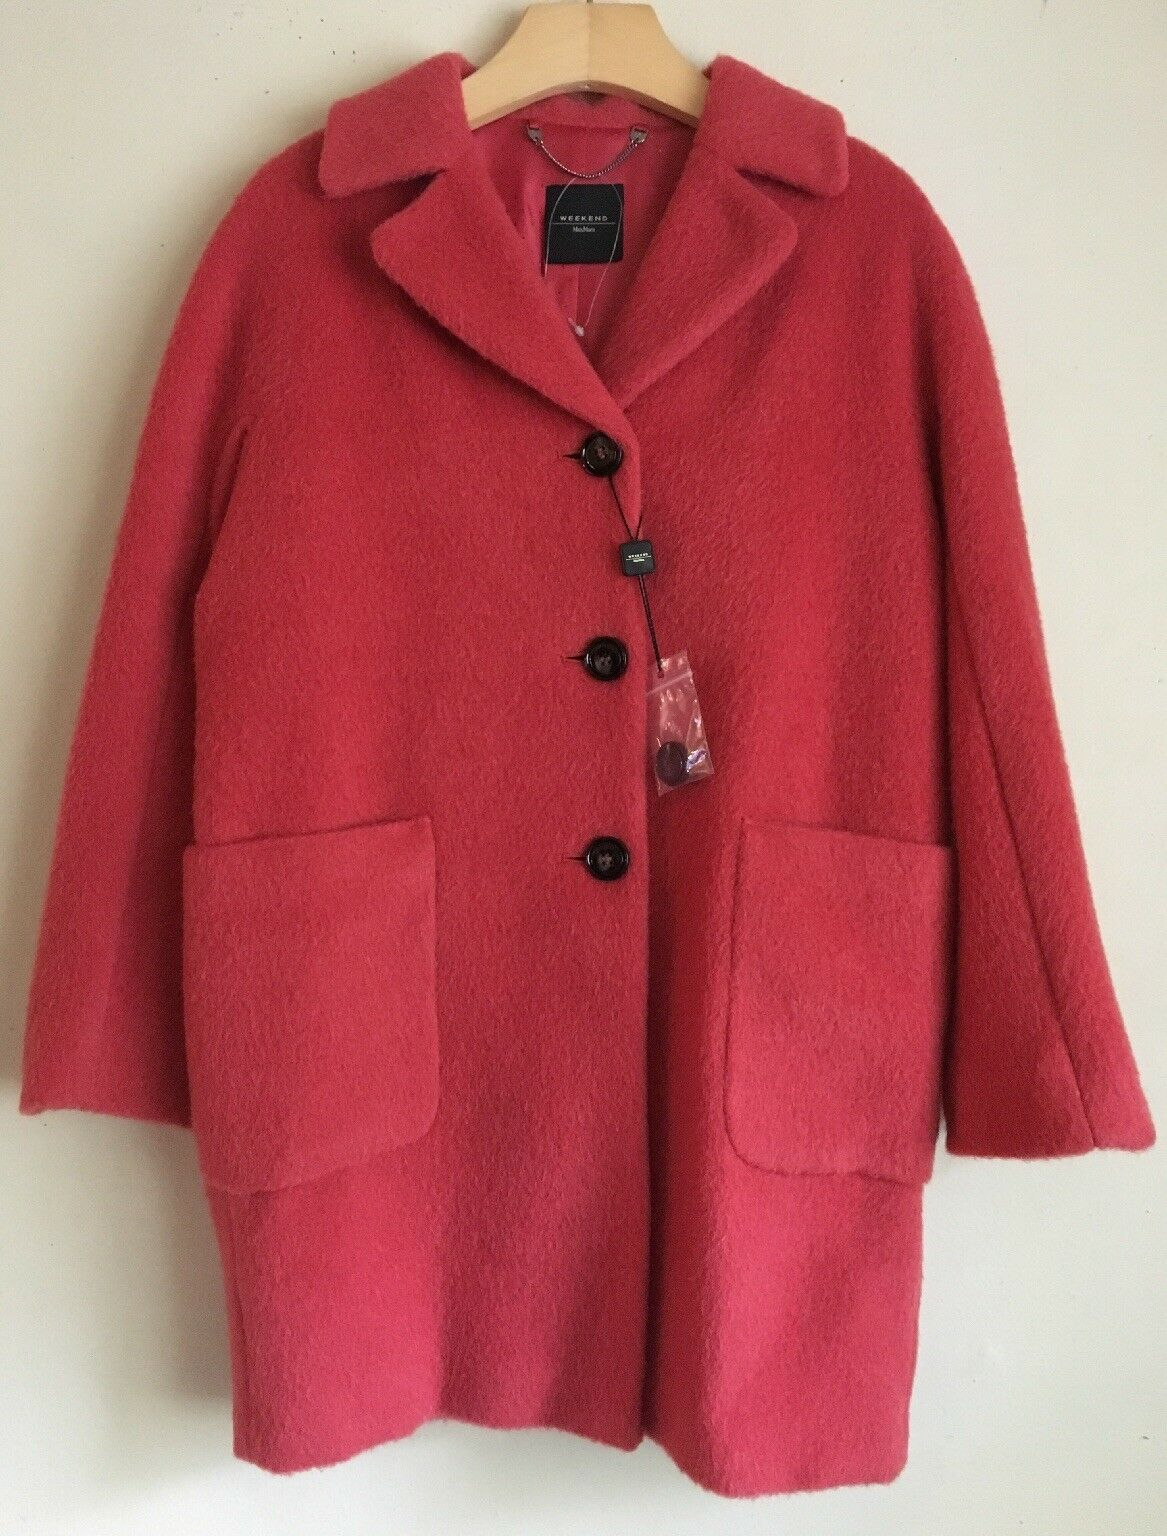 NWT Weekend Max Mara Woman's Button Down Wool Alpaca Red Coat US Size 2